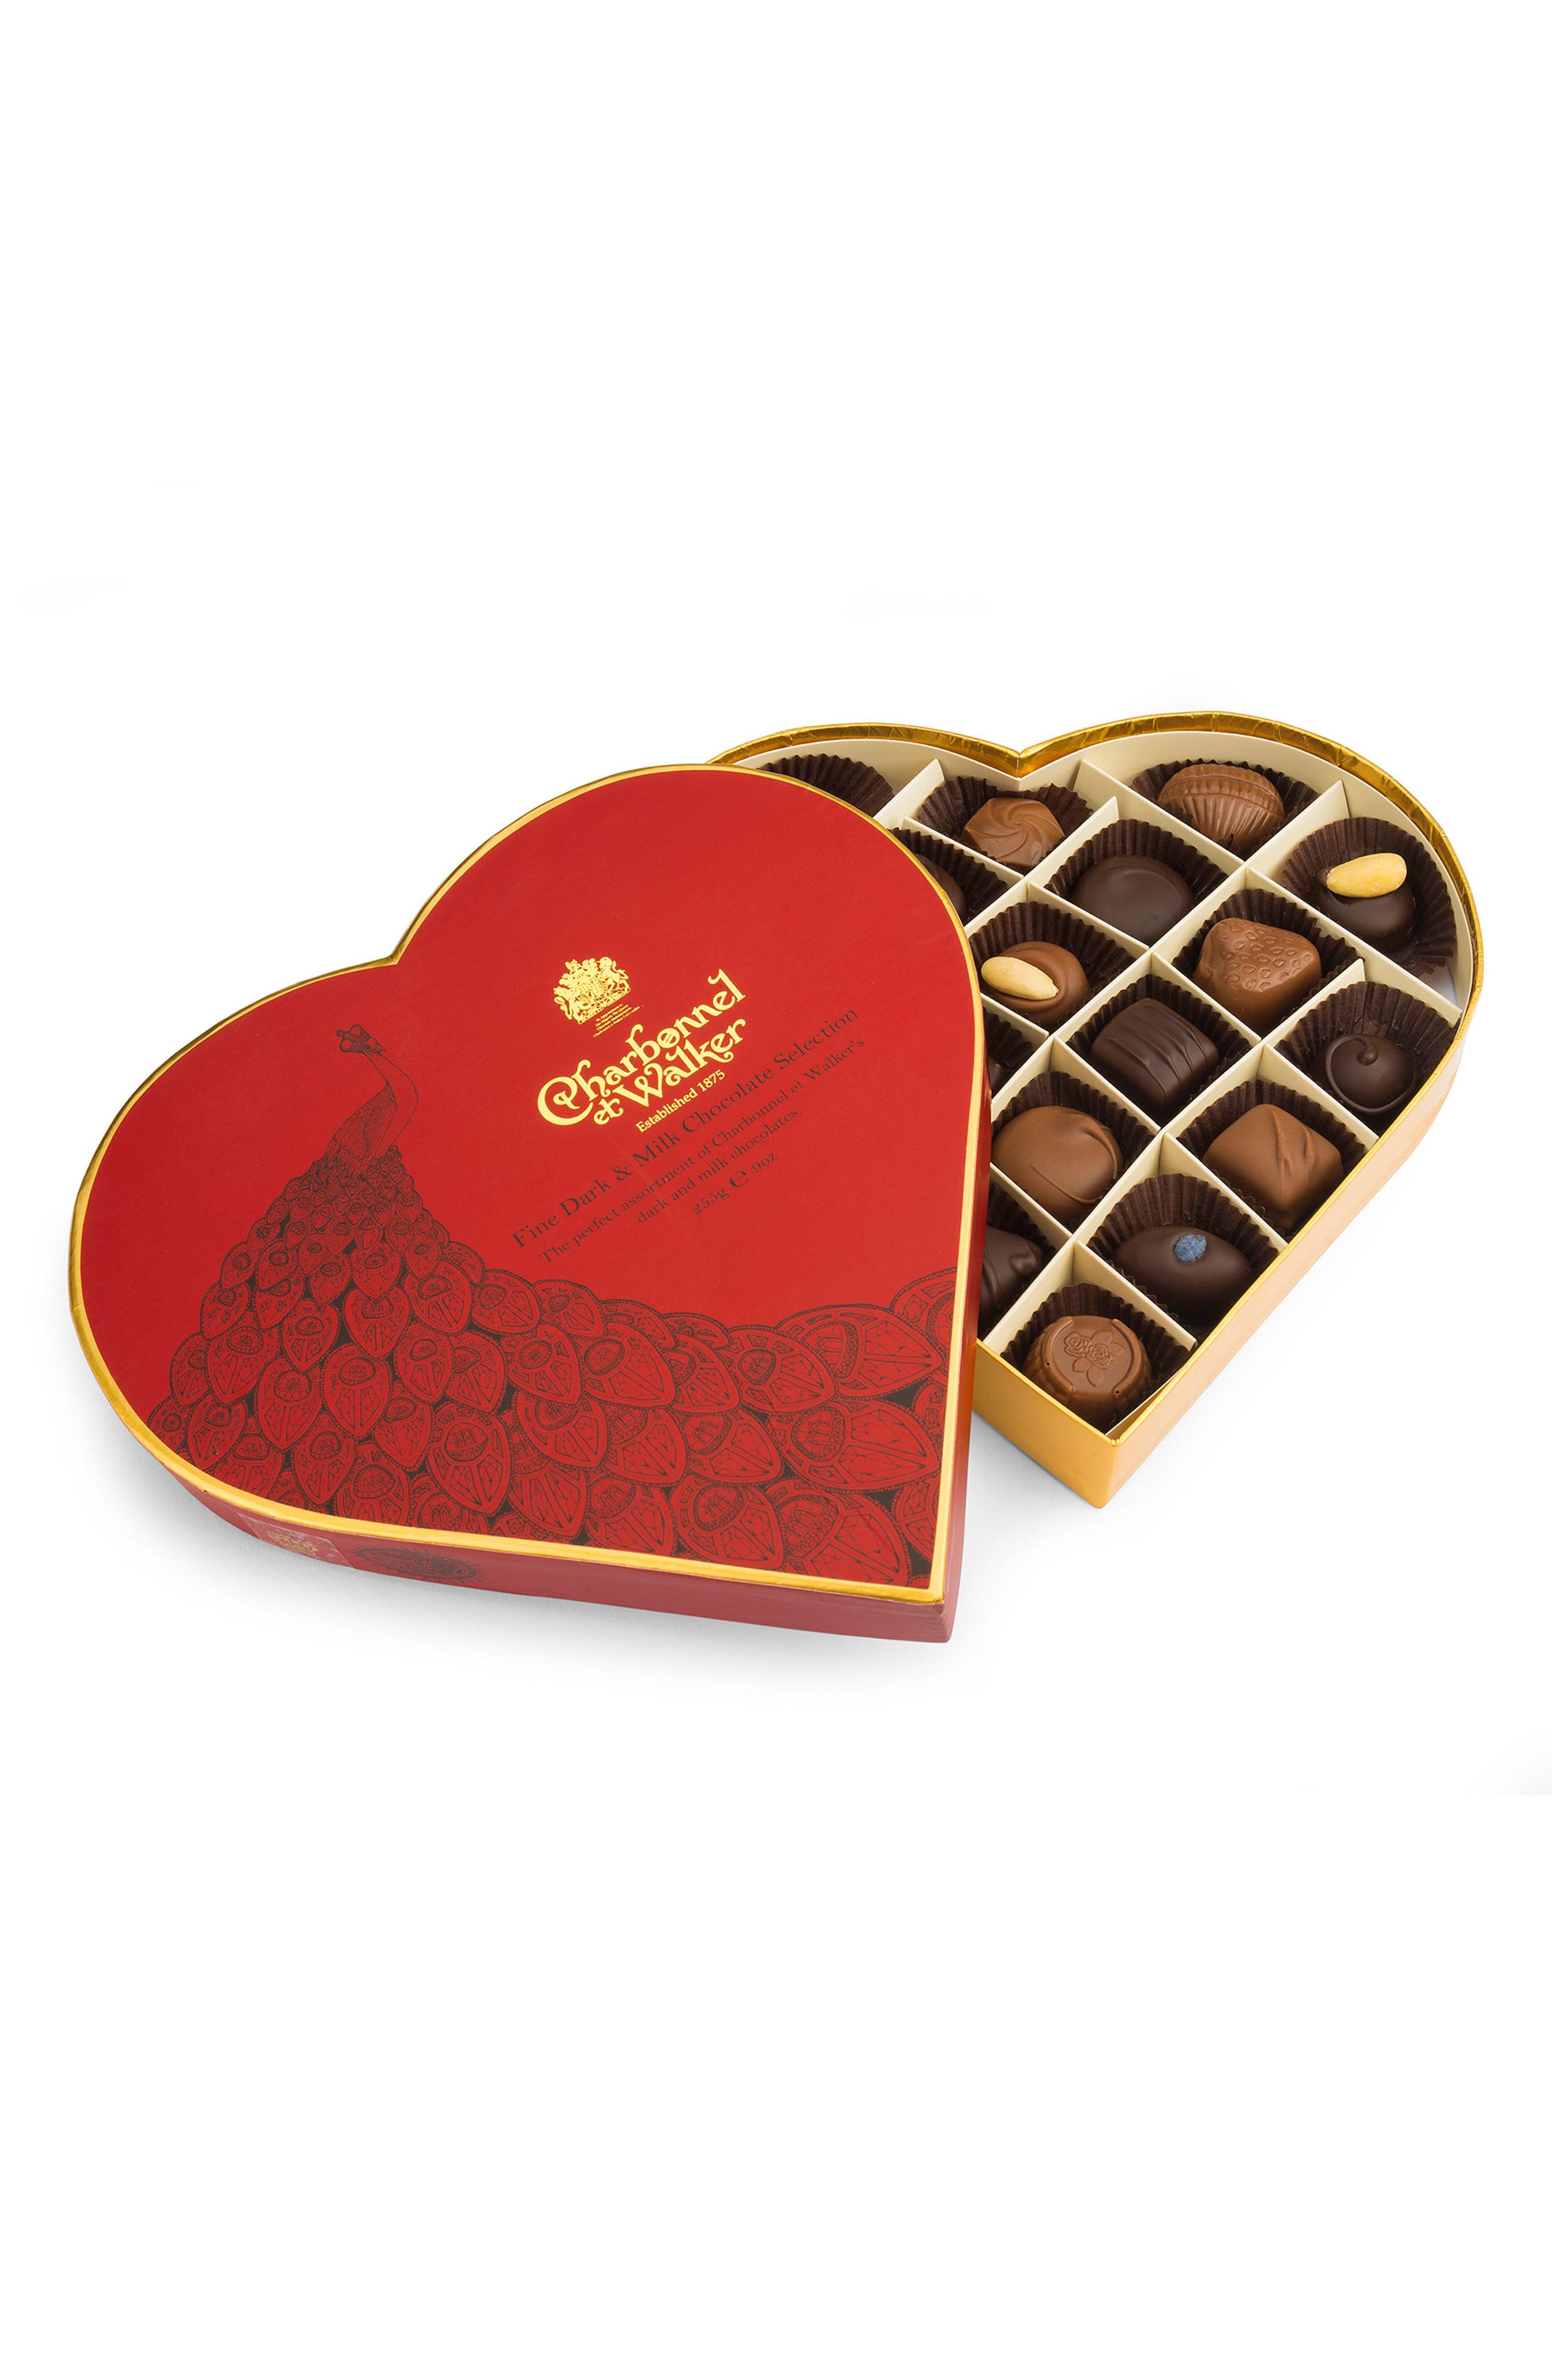 Assorted Chocolates in Heart Shaped Gift Box,                             Main thumbnail 1, color,                             600